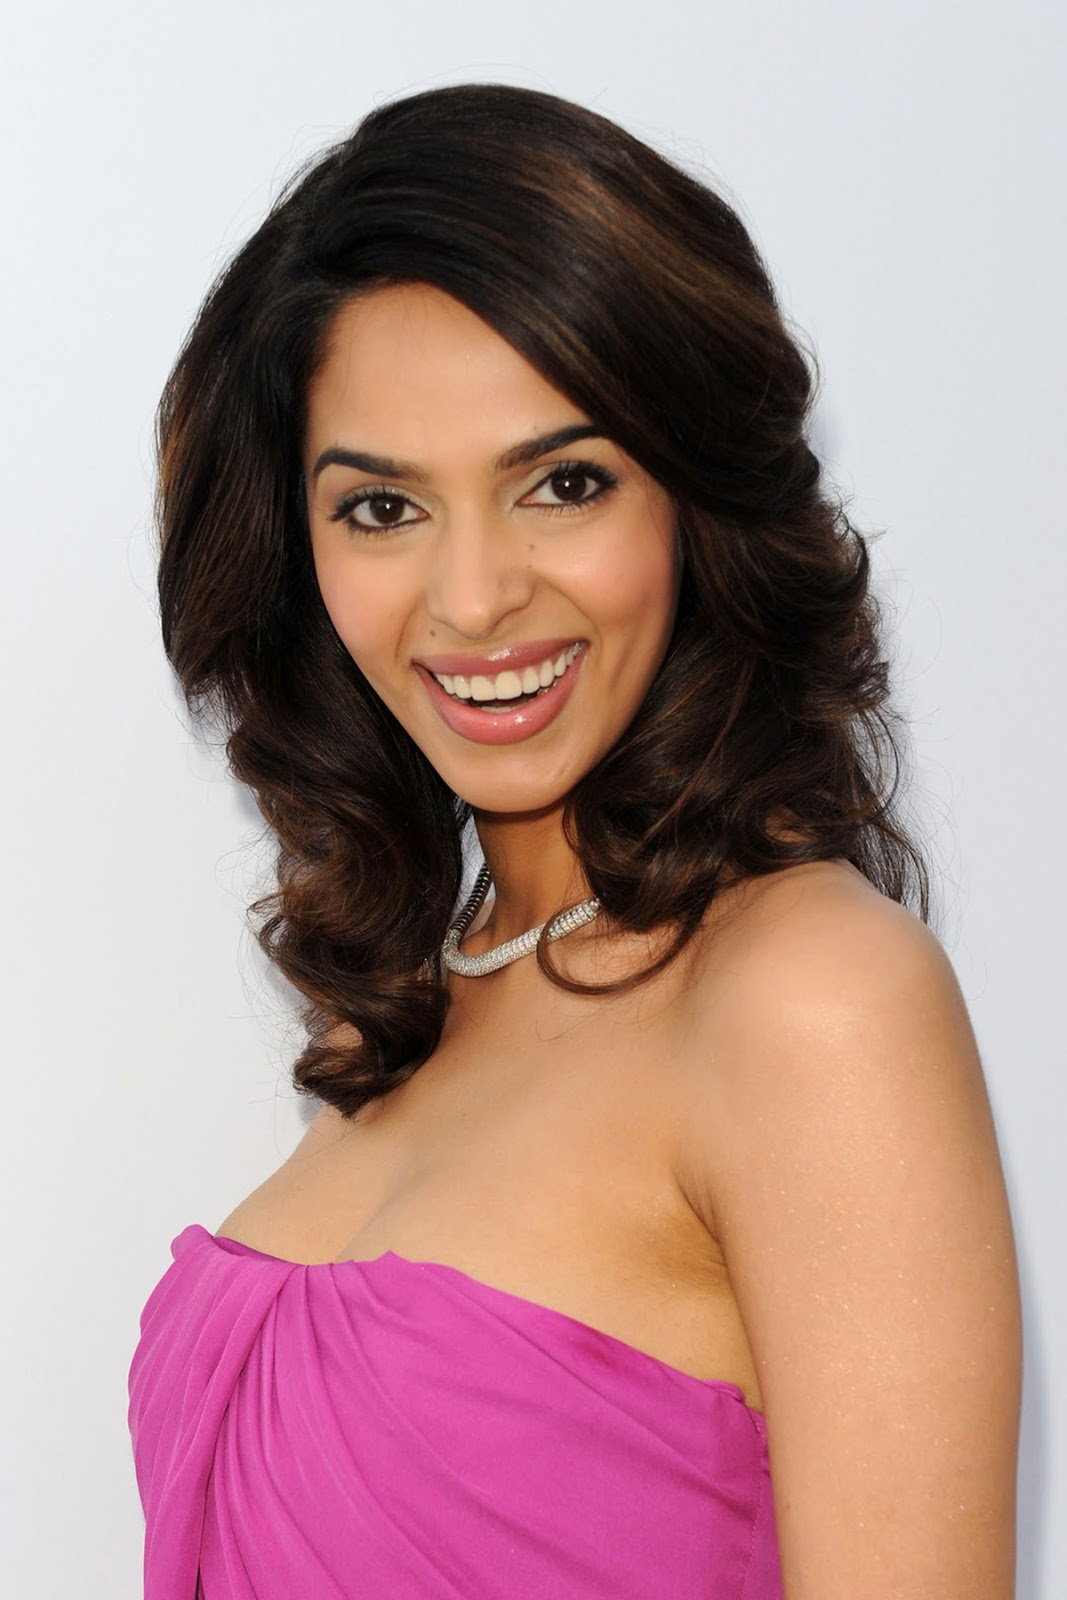 Rather valuable Mallika sherawat face with